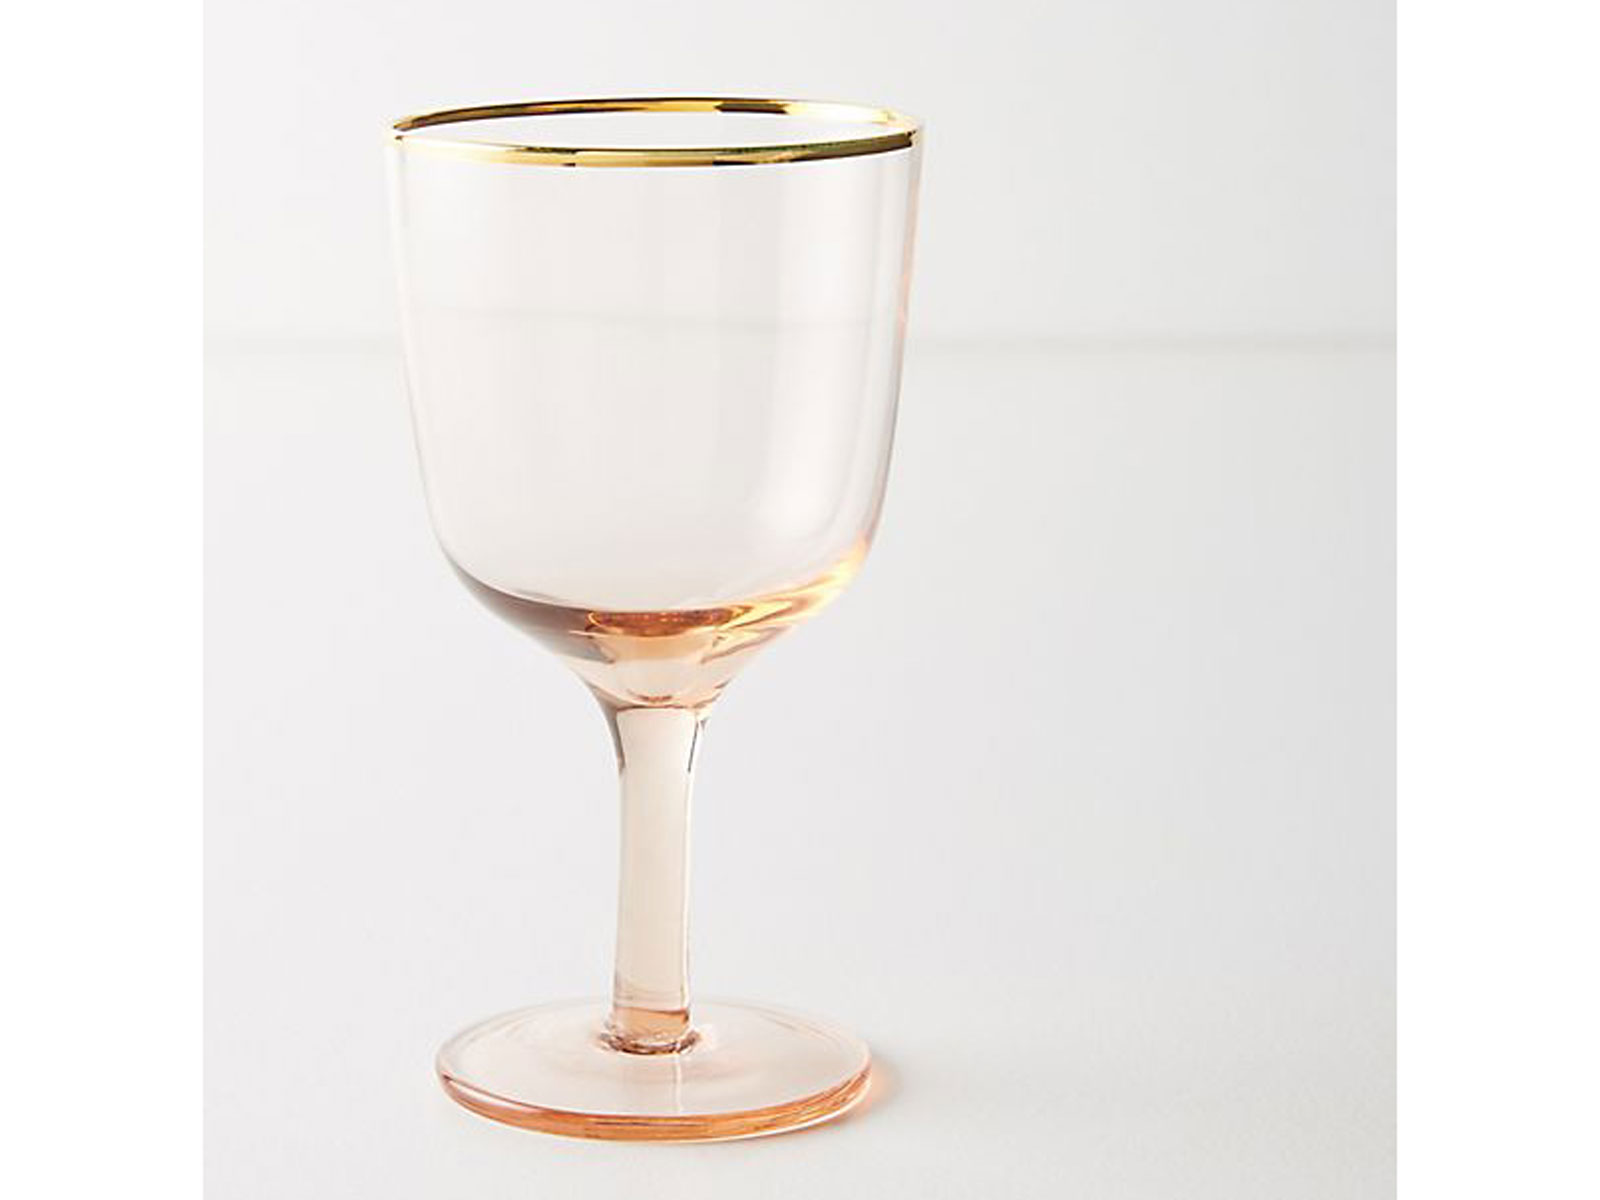 Anthropologie aperitif glass